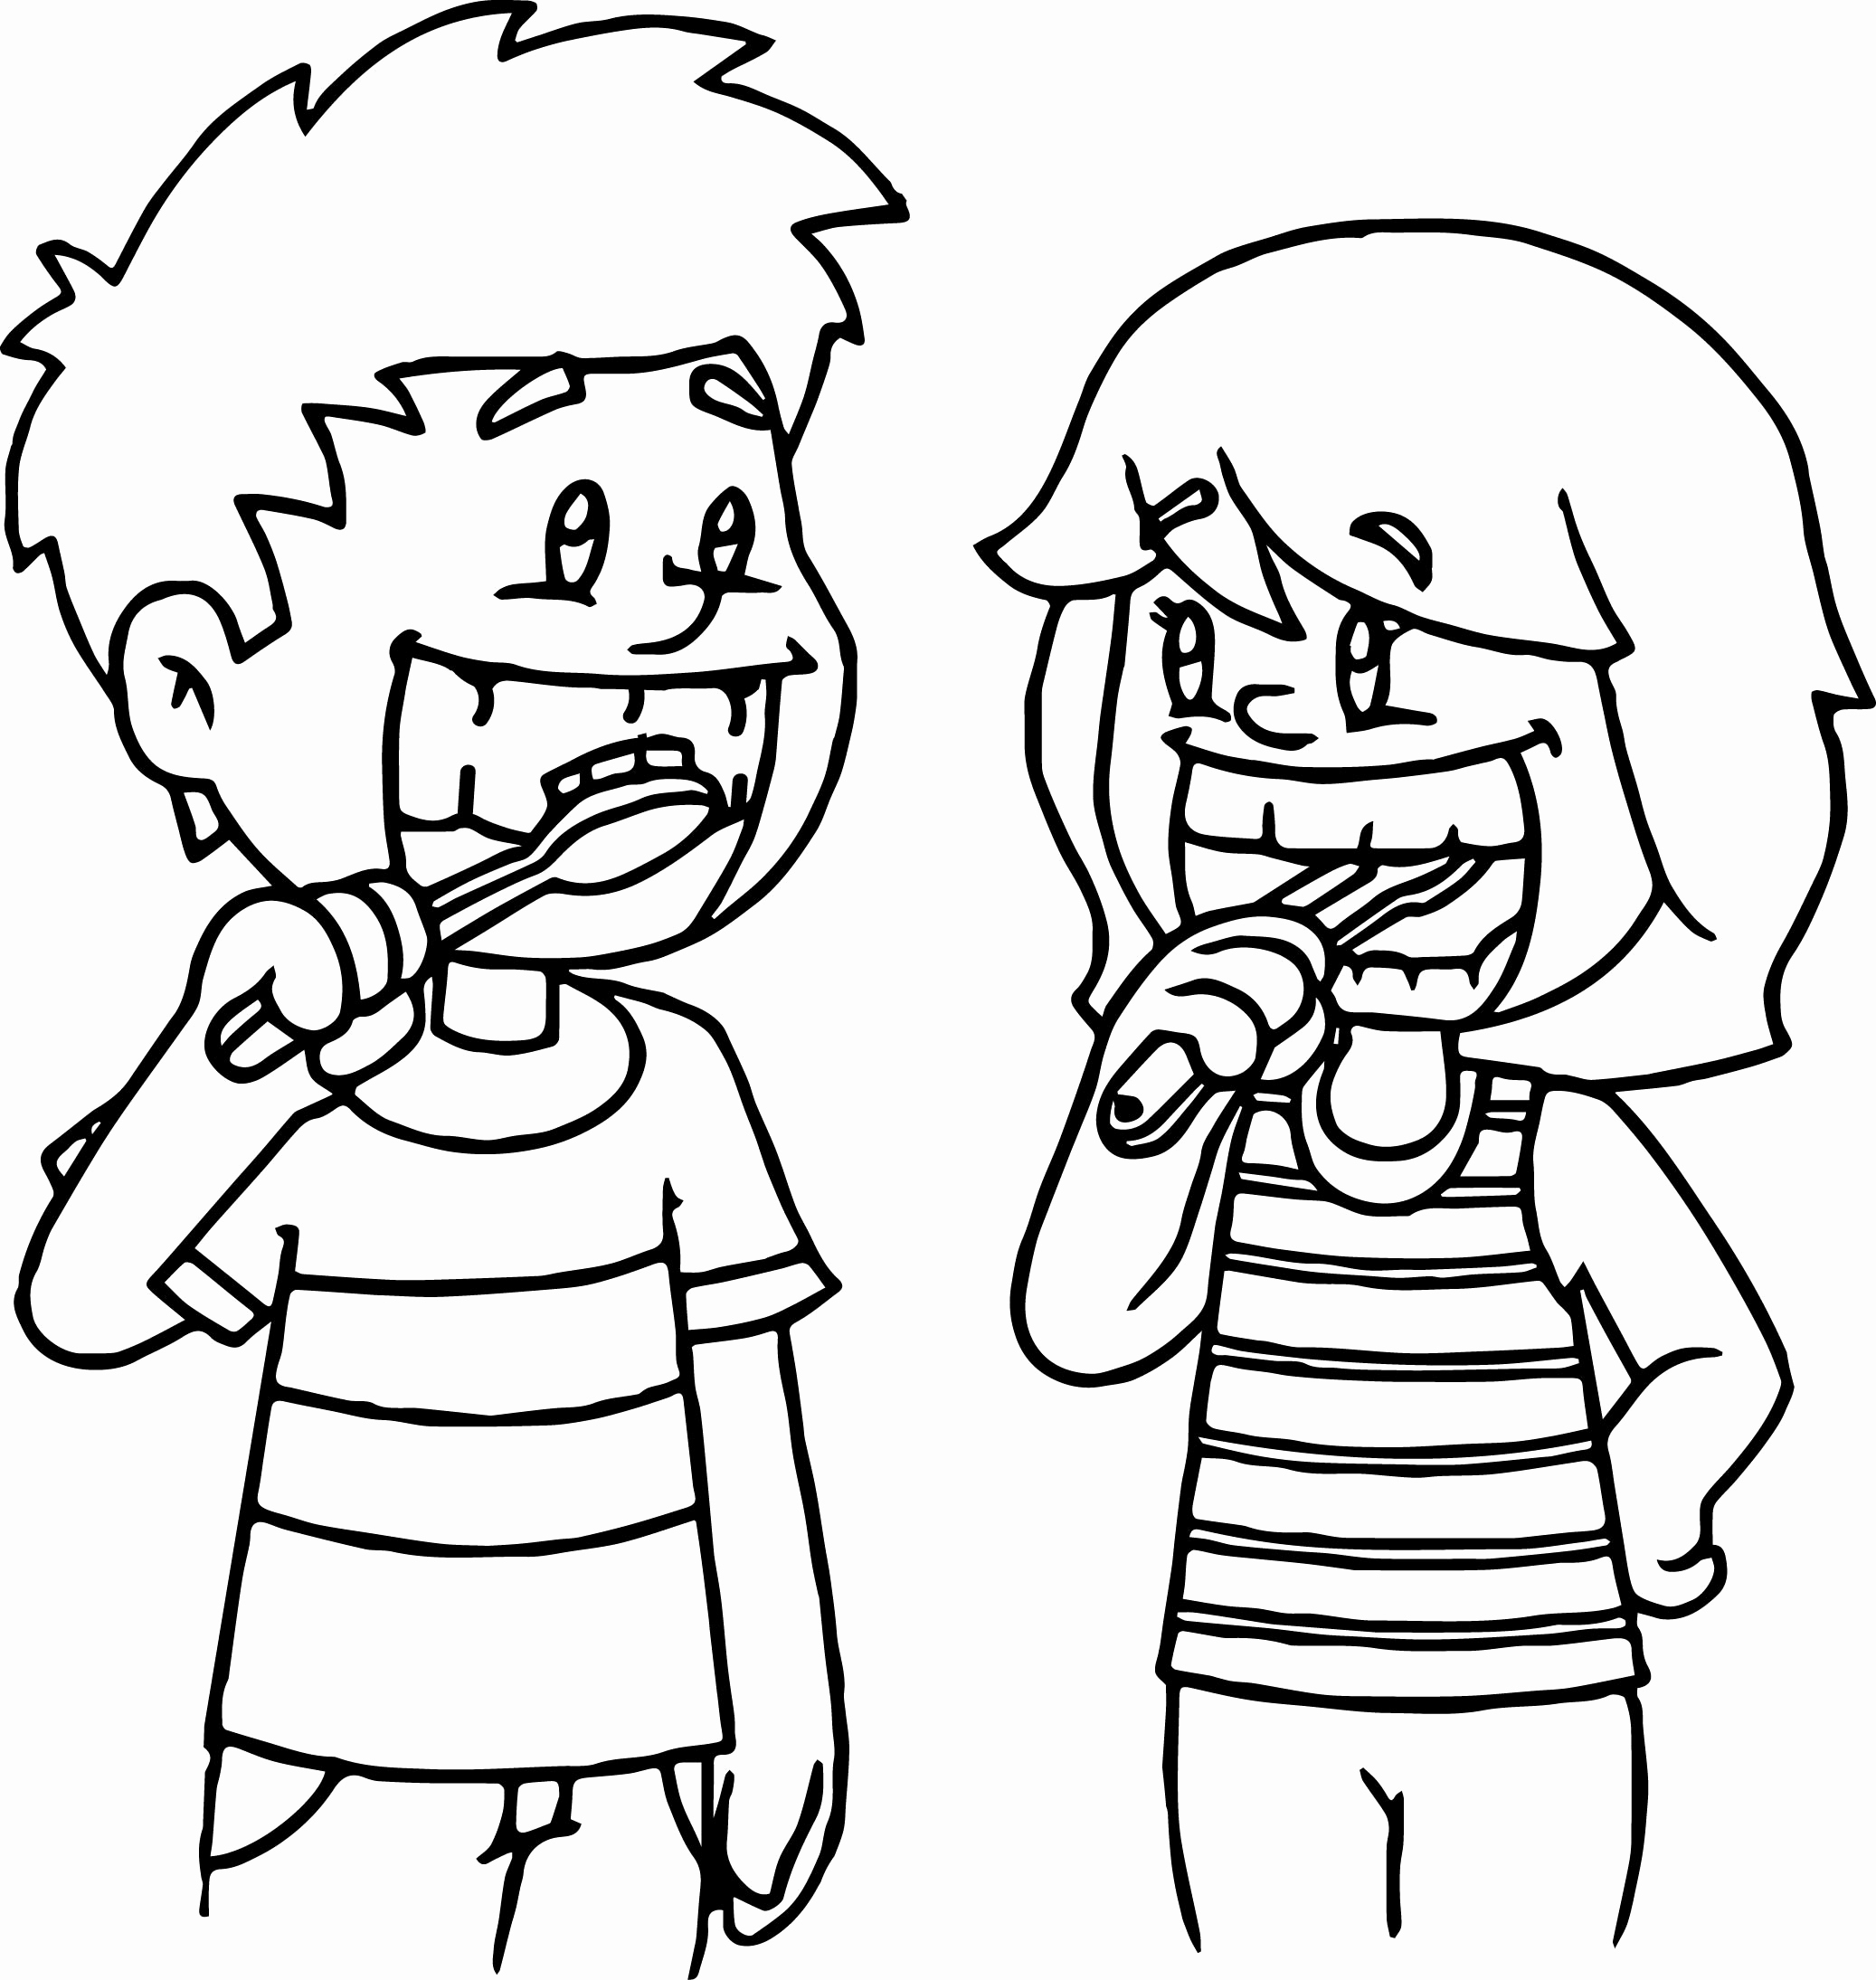 2074x2189 Toothbrush Coloring Page Coloring Page